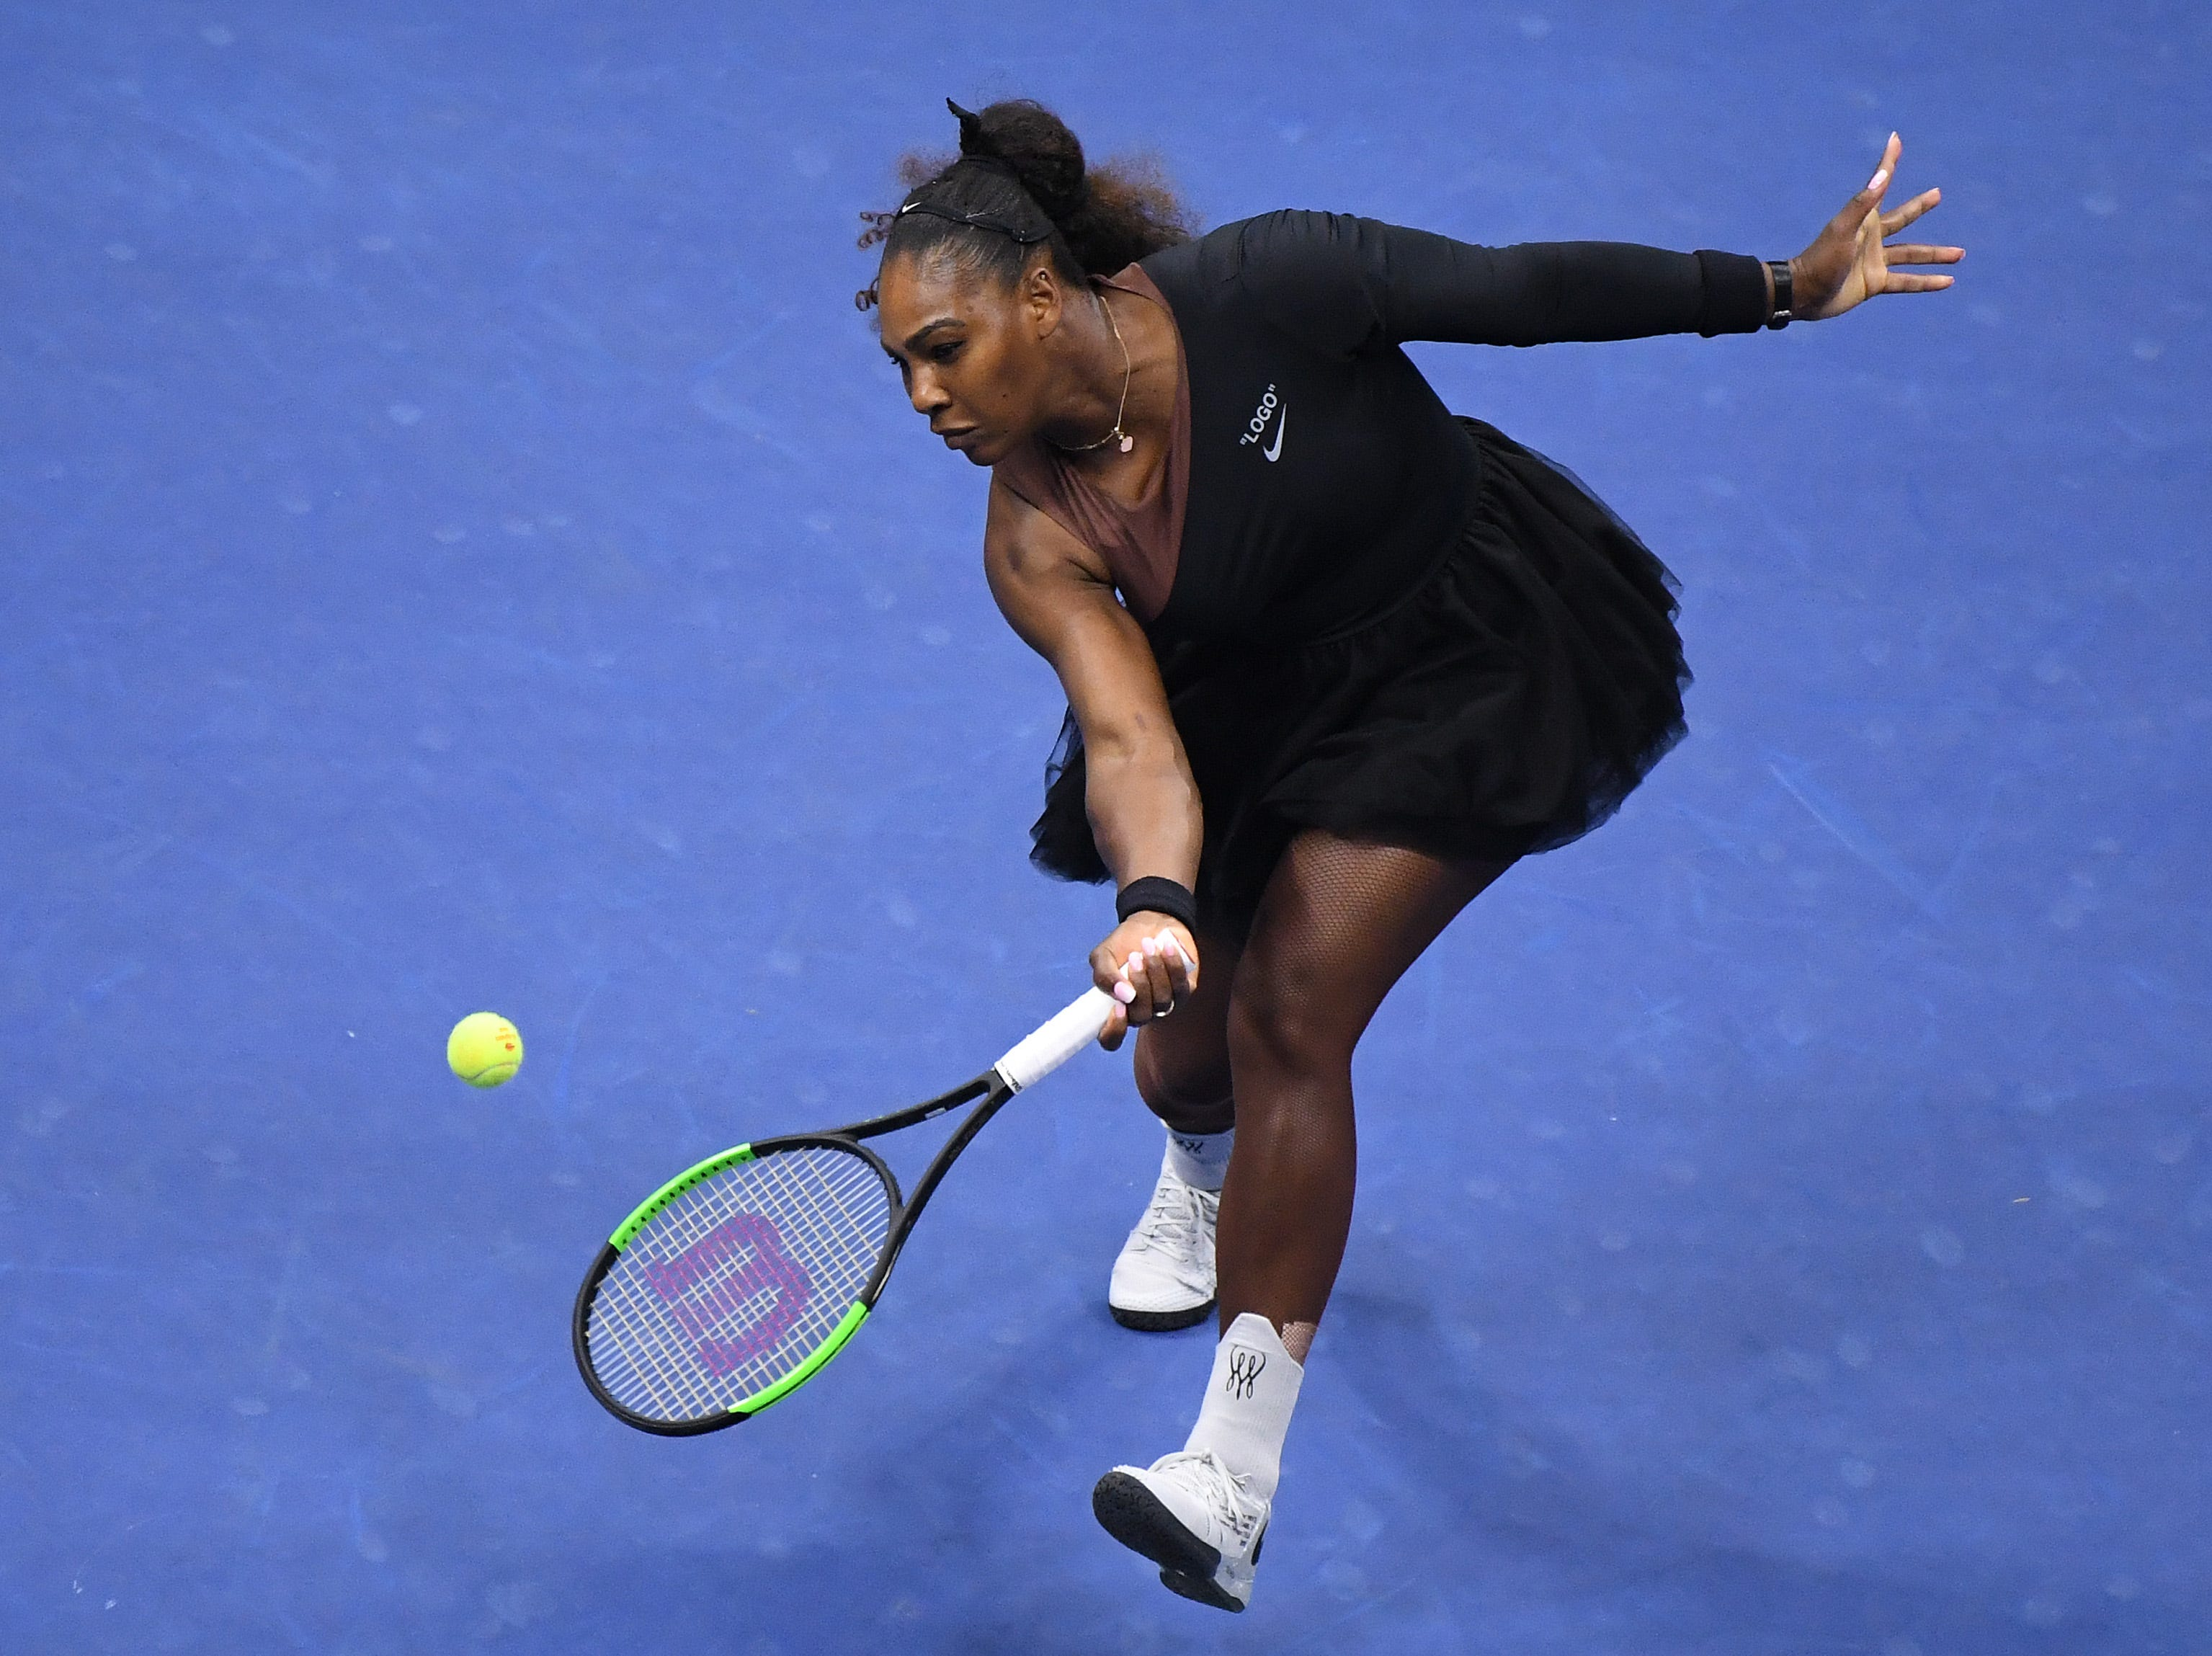 Serena Williams hits a volley against Naomi Osaka.